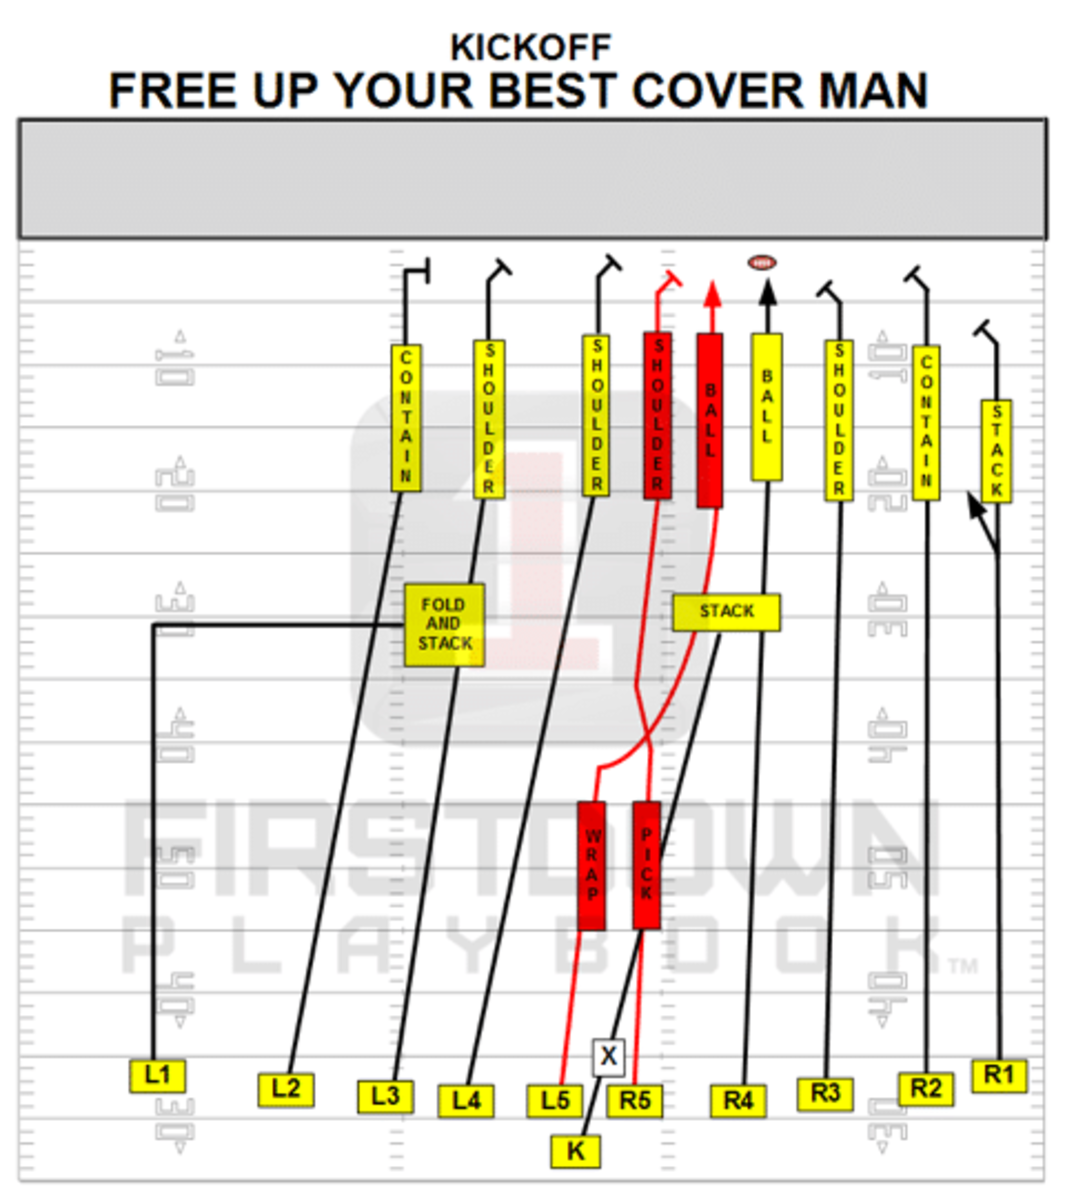 1stdown-free up your best cover man